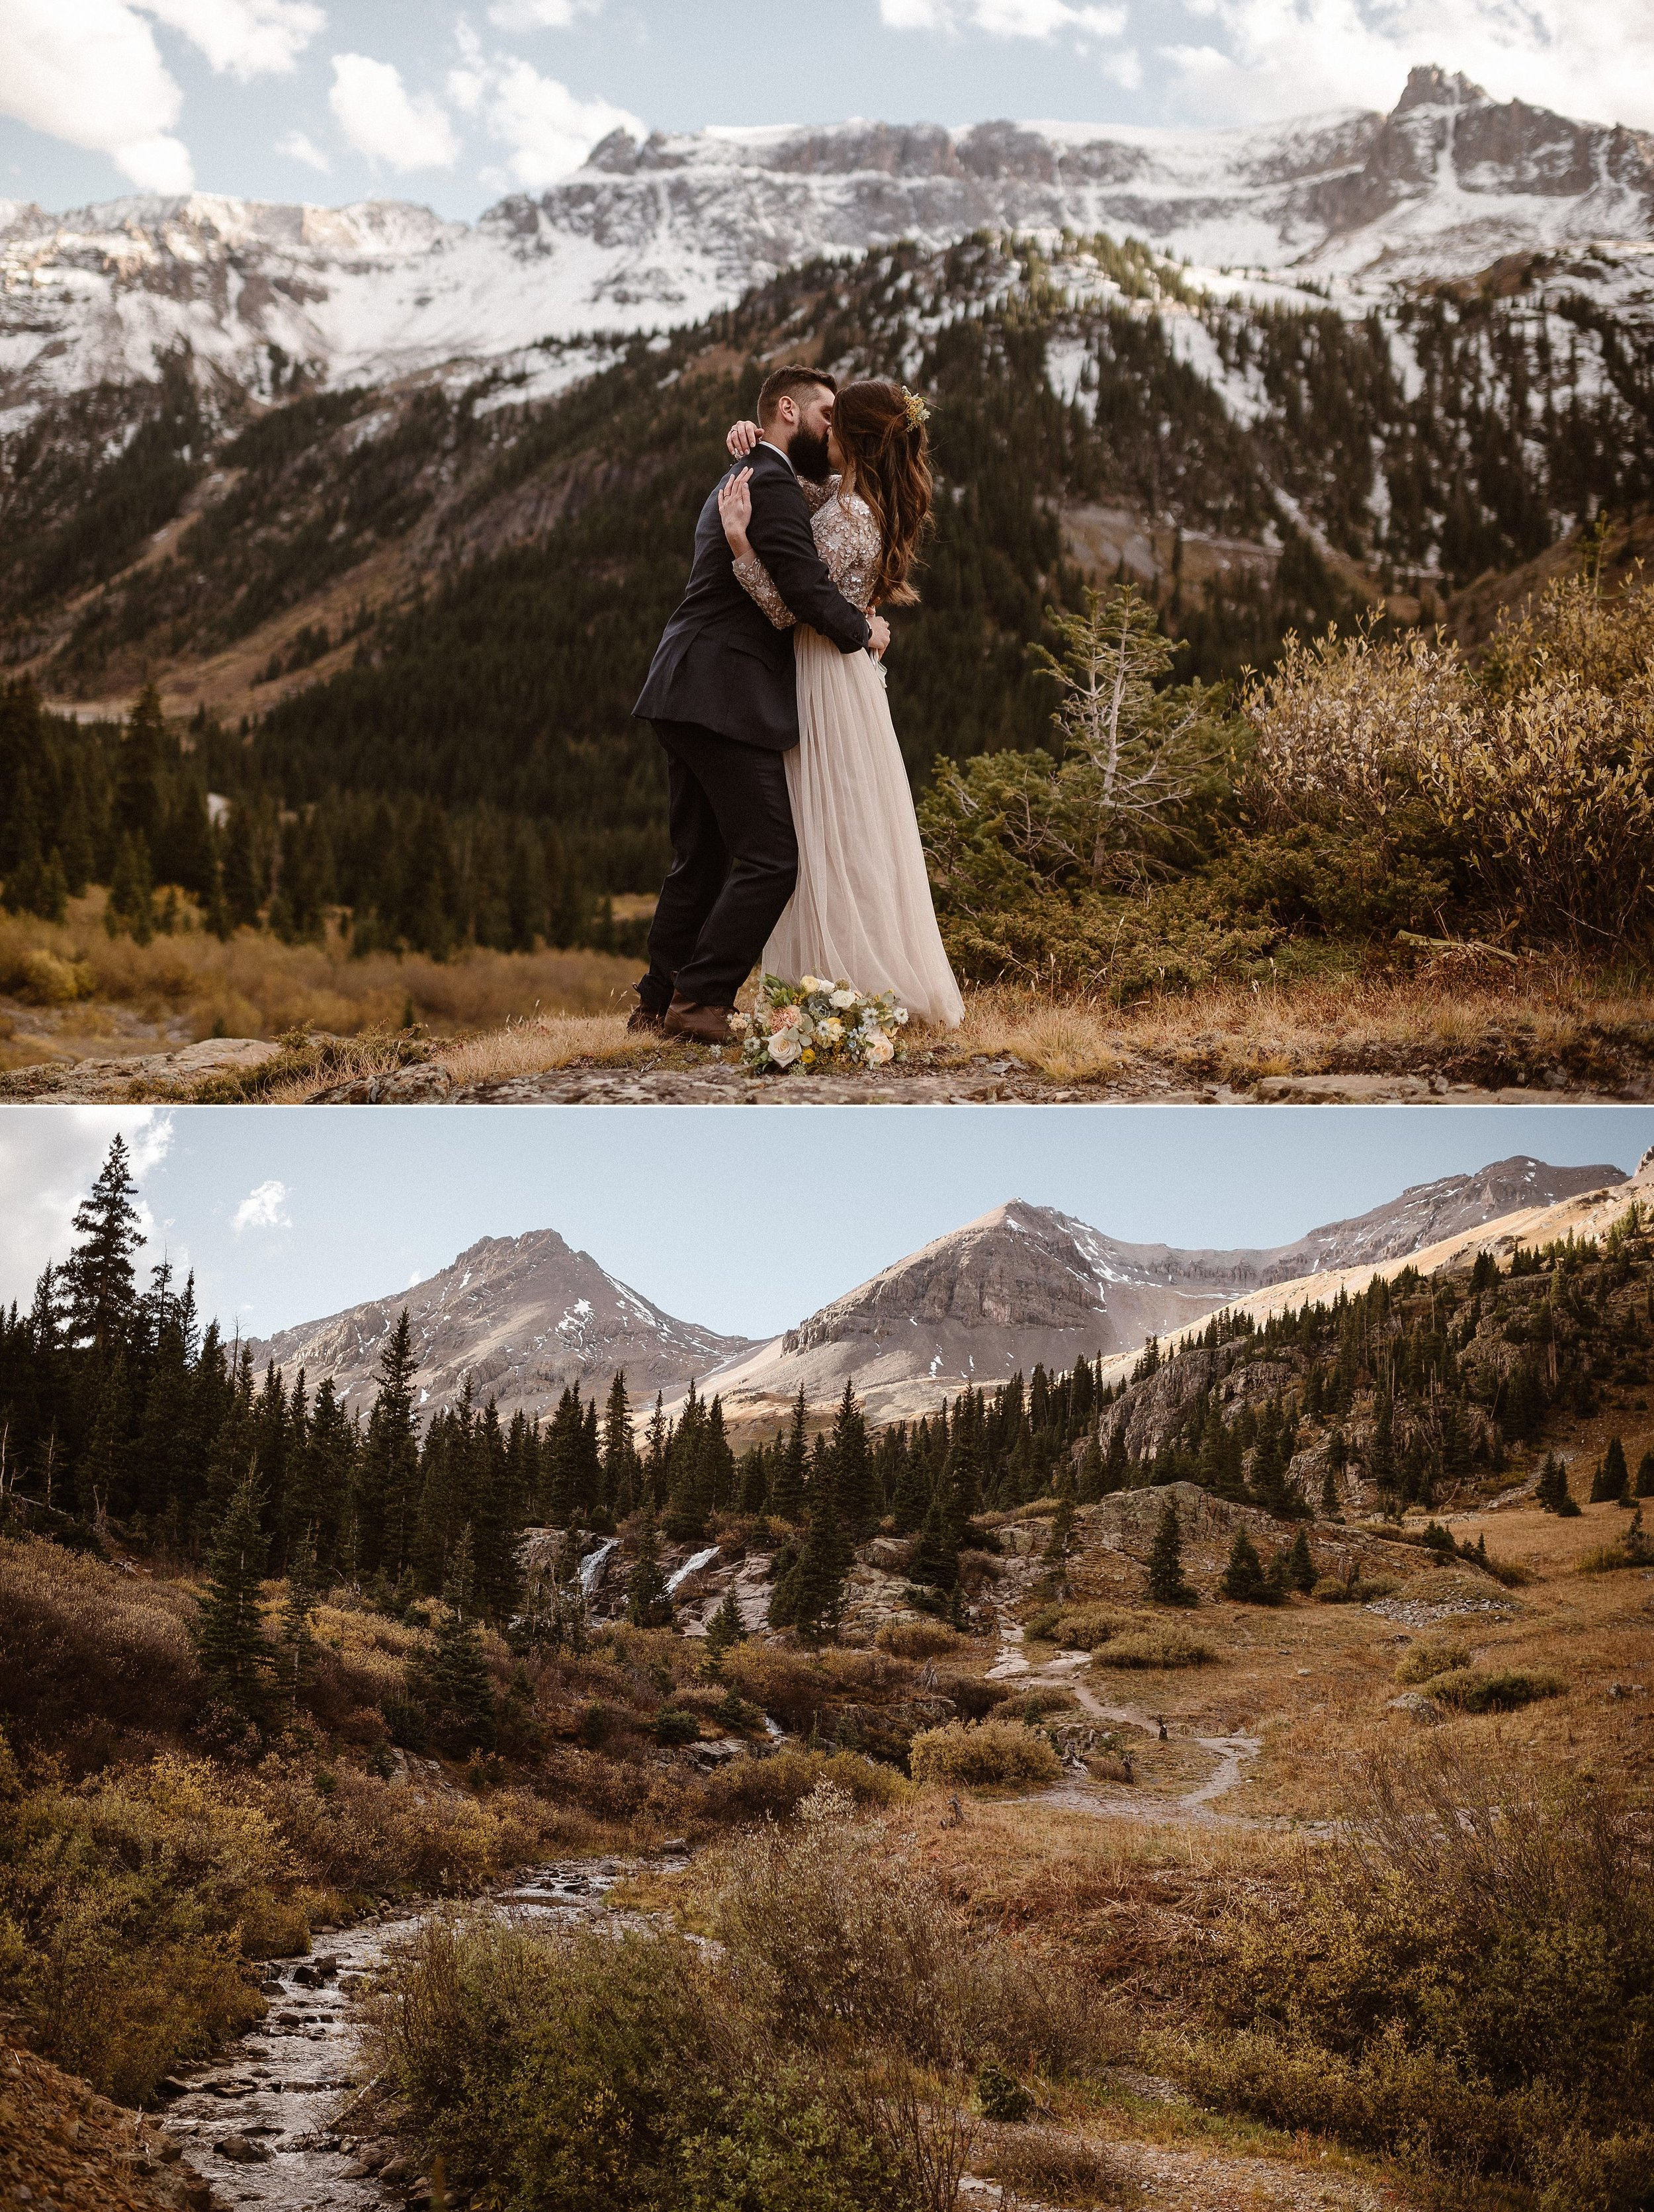 Sealed with a kiss high above Ouray in the San Juan Mountains, they were wed in a private elopement ceremony. Colorado's self solemnization laws making it one of the most romantic destinations to elope. This intimate hiking elopement through Yankee Boy Basin was photographed by traveling wedding photographer Maddie Mae.